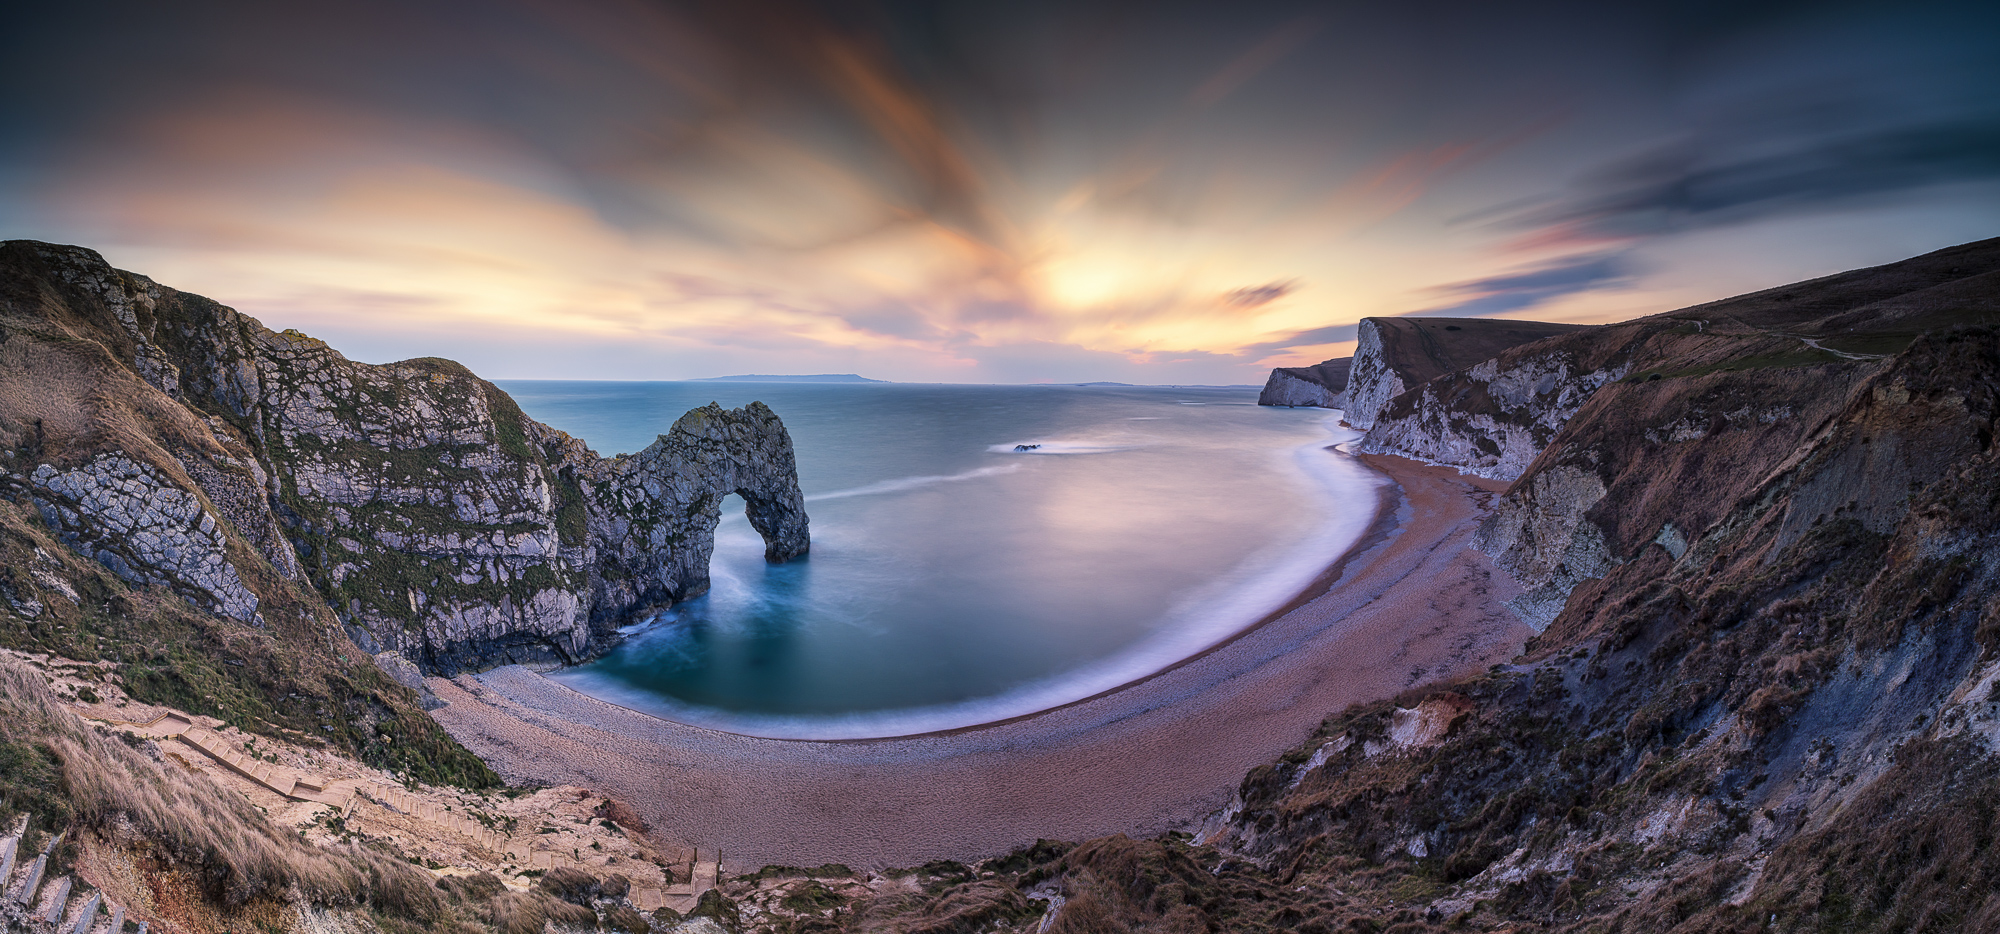 Durdle Door at Sunset, Dorset, England